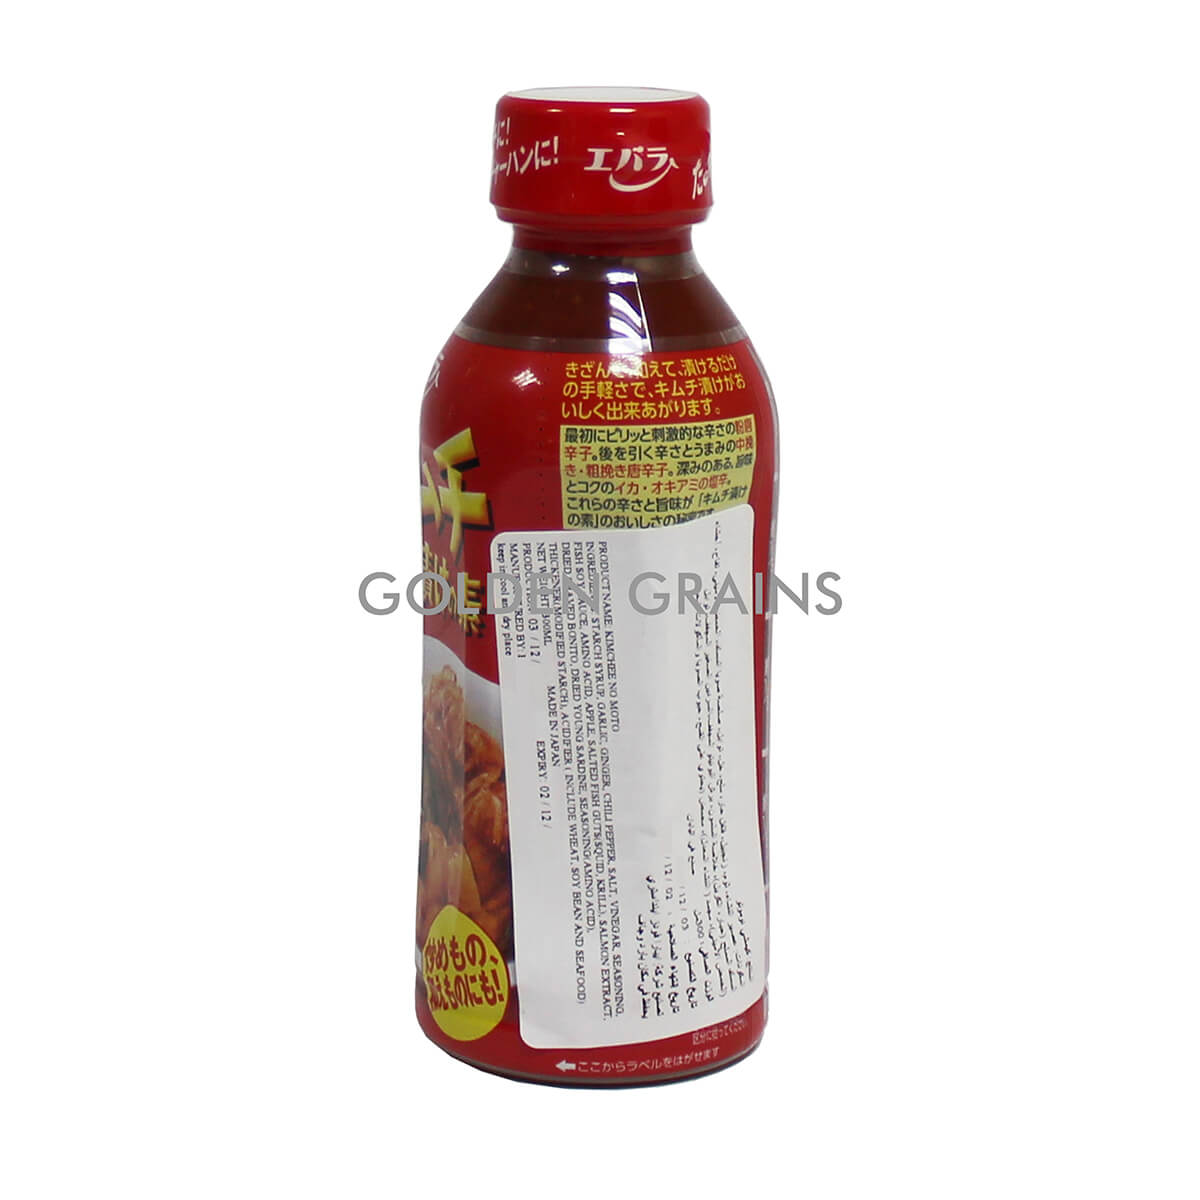 Golden Grains Ebara - Kimchee No Moto - 300ML - Japan - Back.jpg